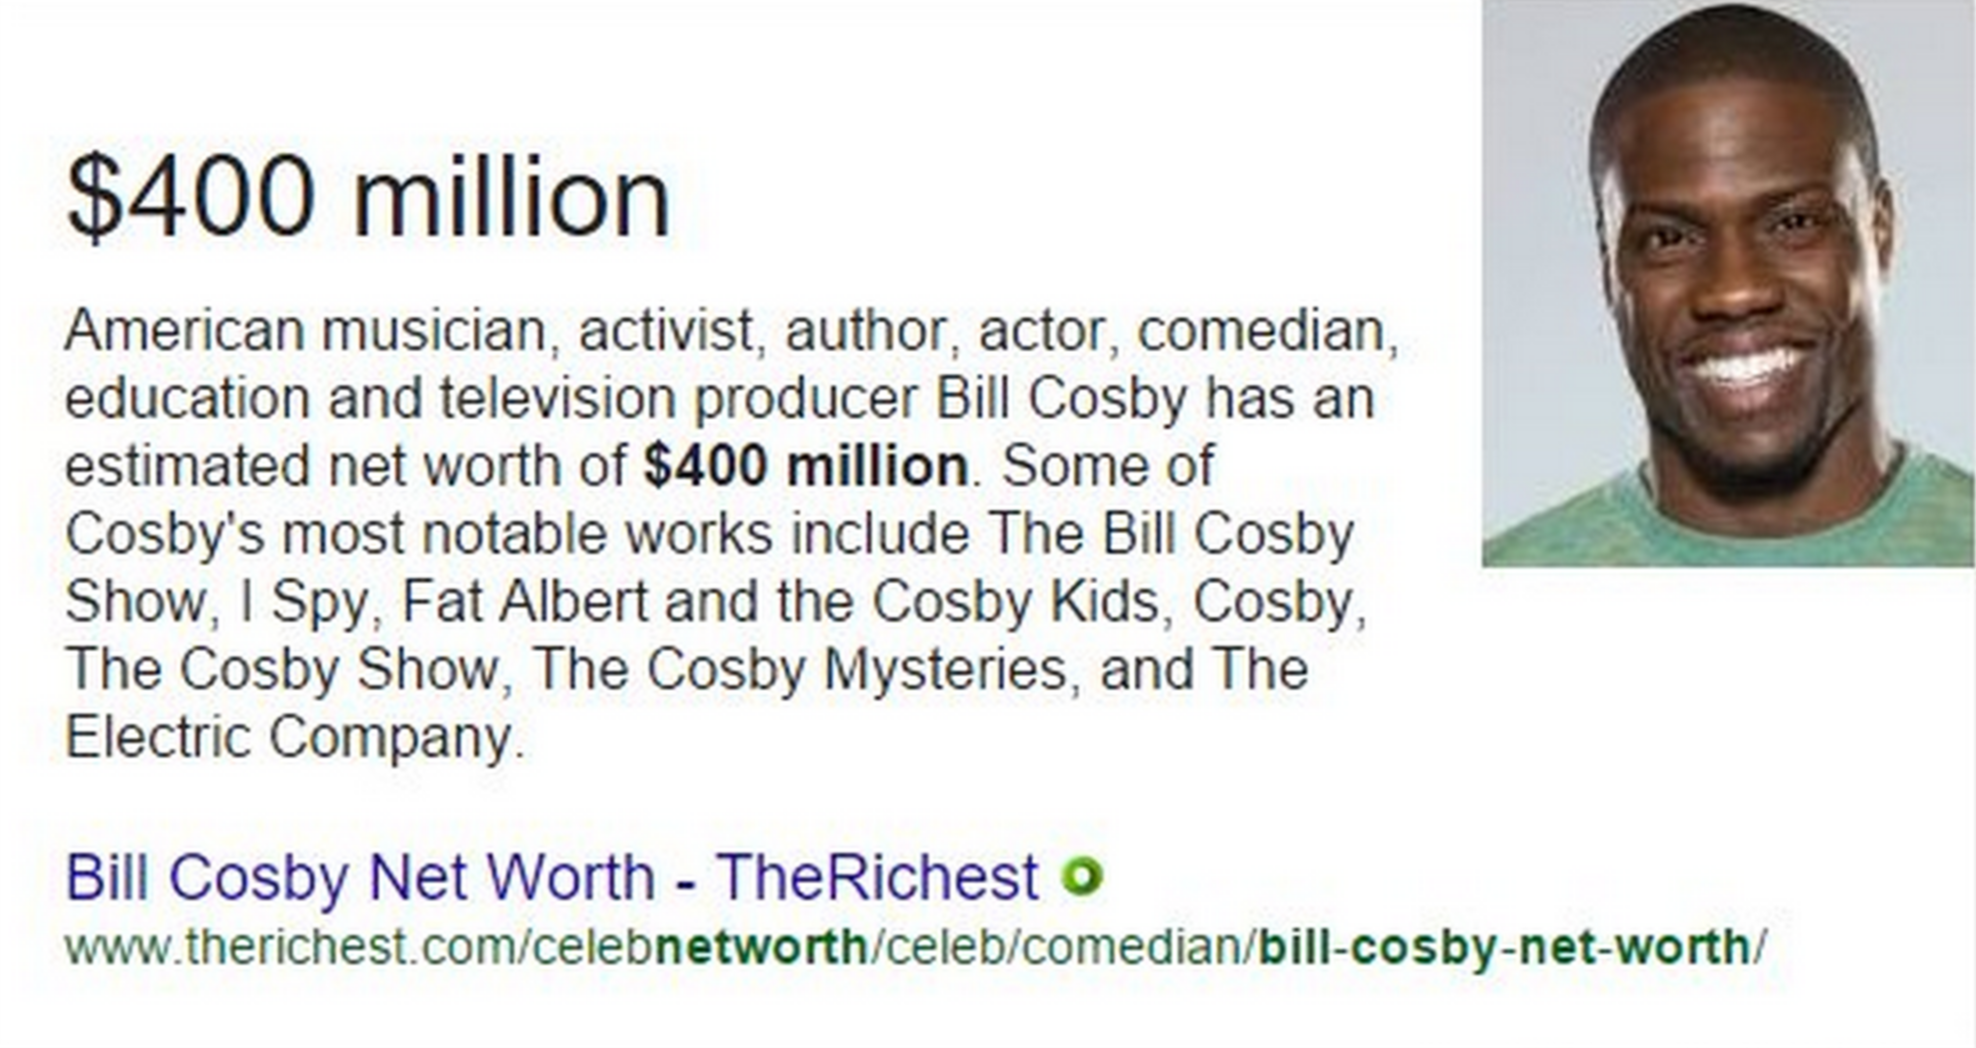 Google confuses Kevin Hart for Bill Cosby